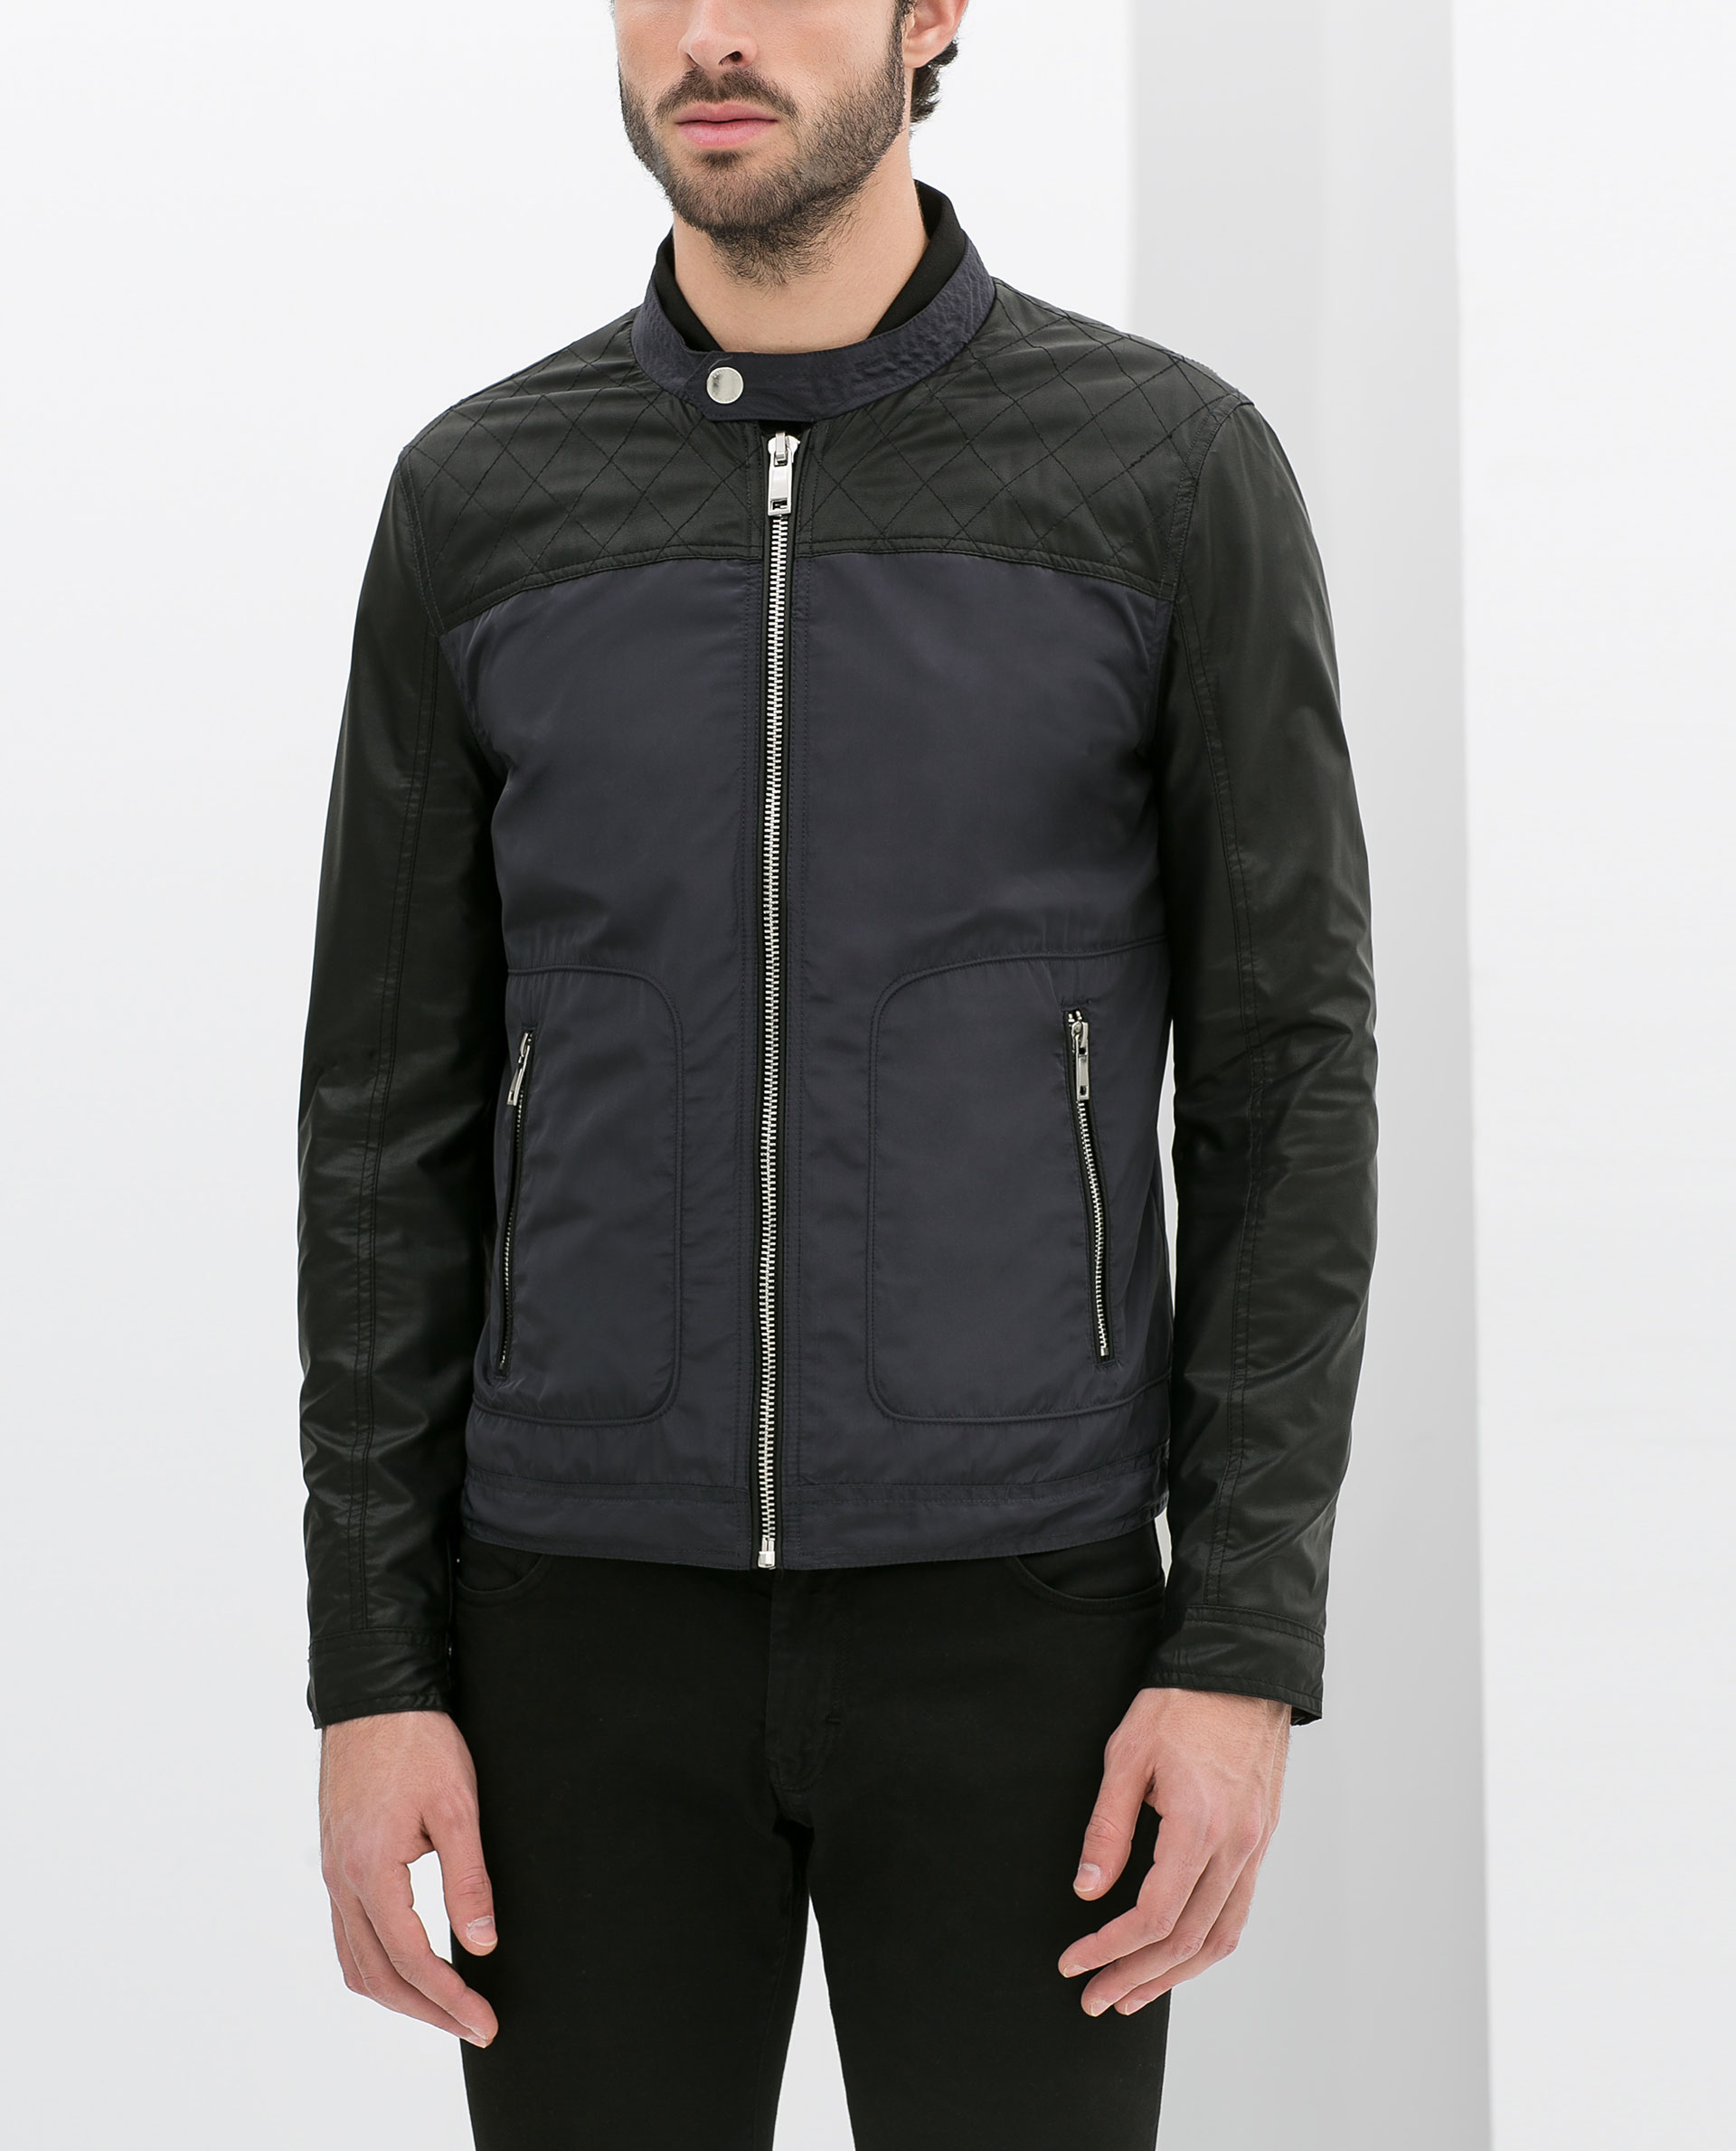 Zara Uk Mens Leather Jackets - Cairoamani.com